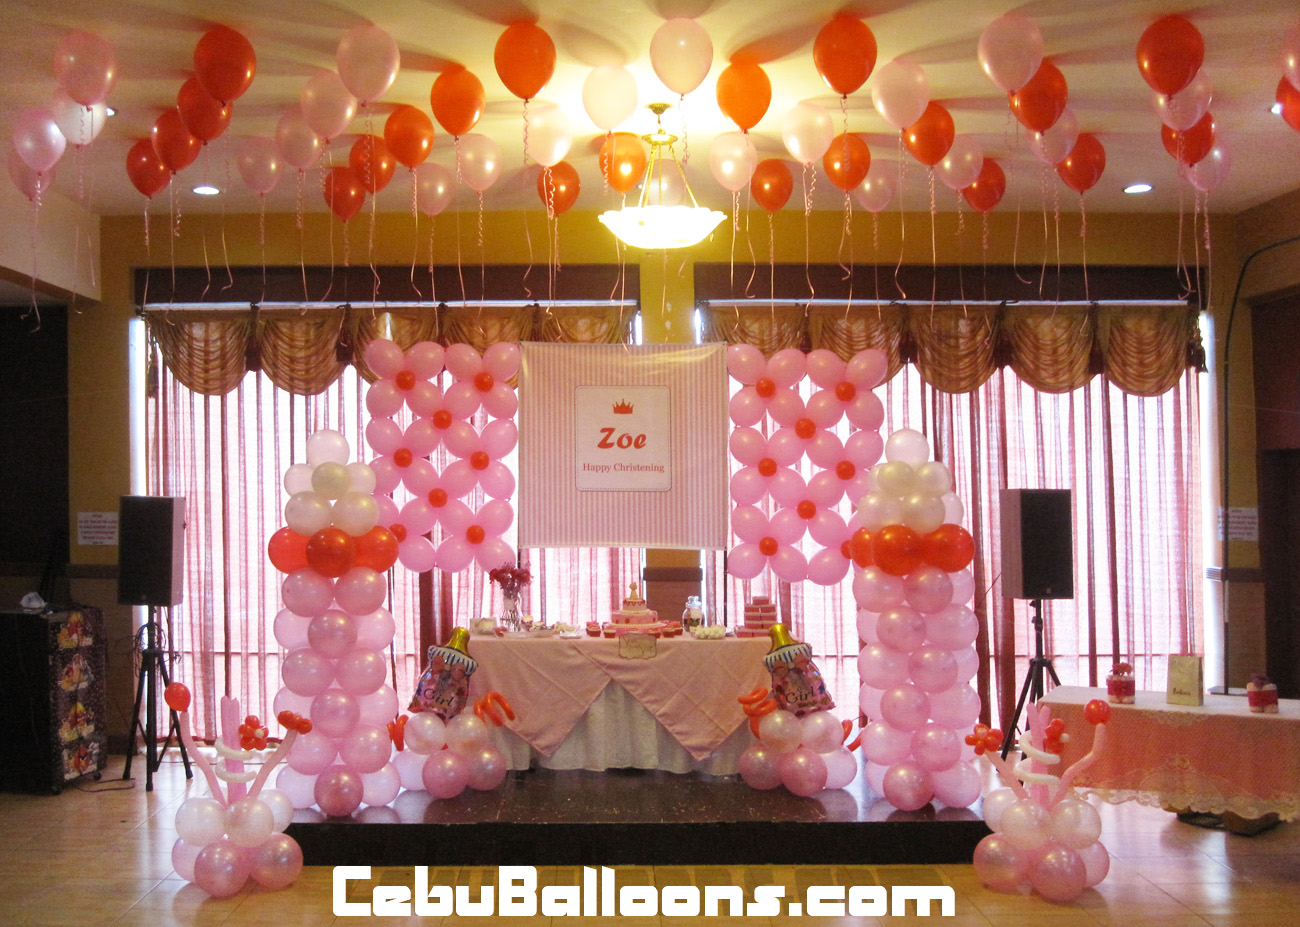 Christening girl cebu balloons and party supplies for Balloon decoration images party